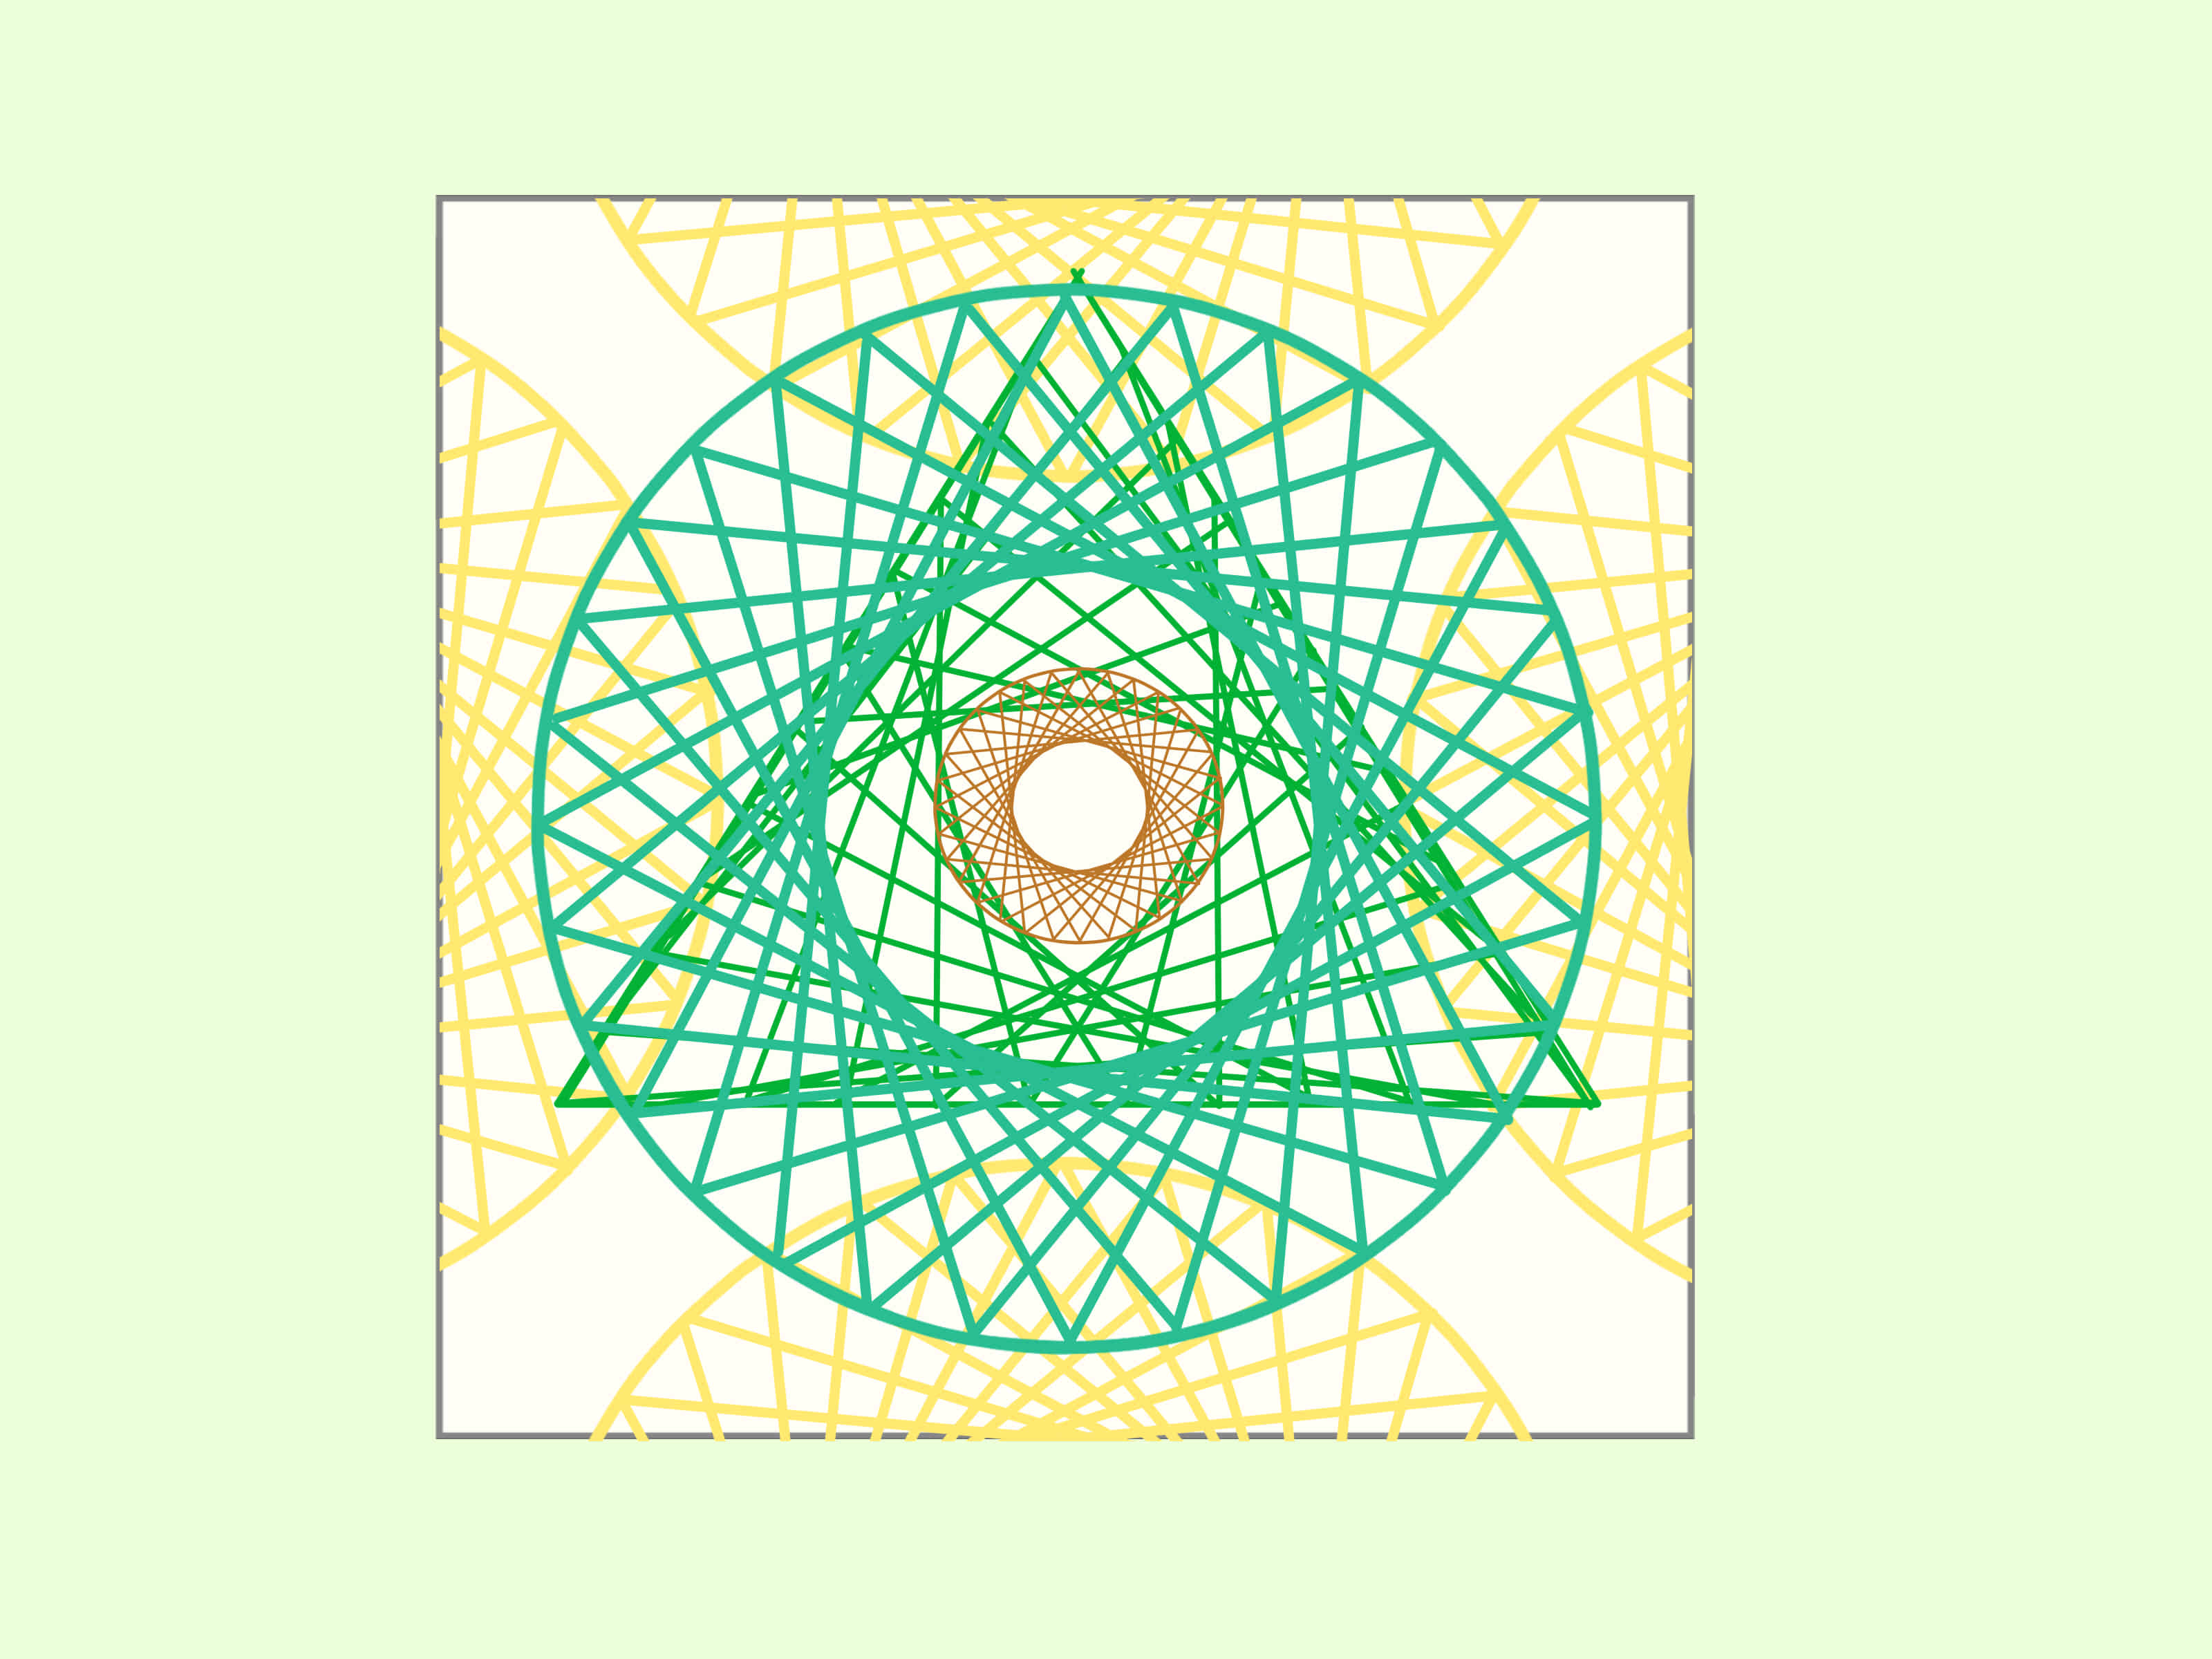 4 Ways To Draw A Parabolic Curve A Curve With Straight Lines